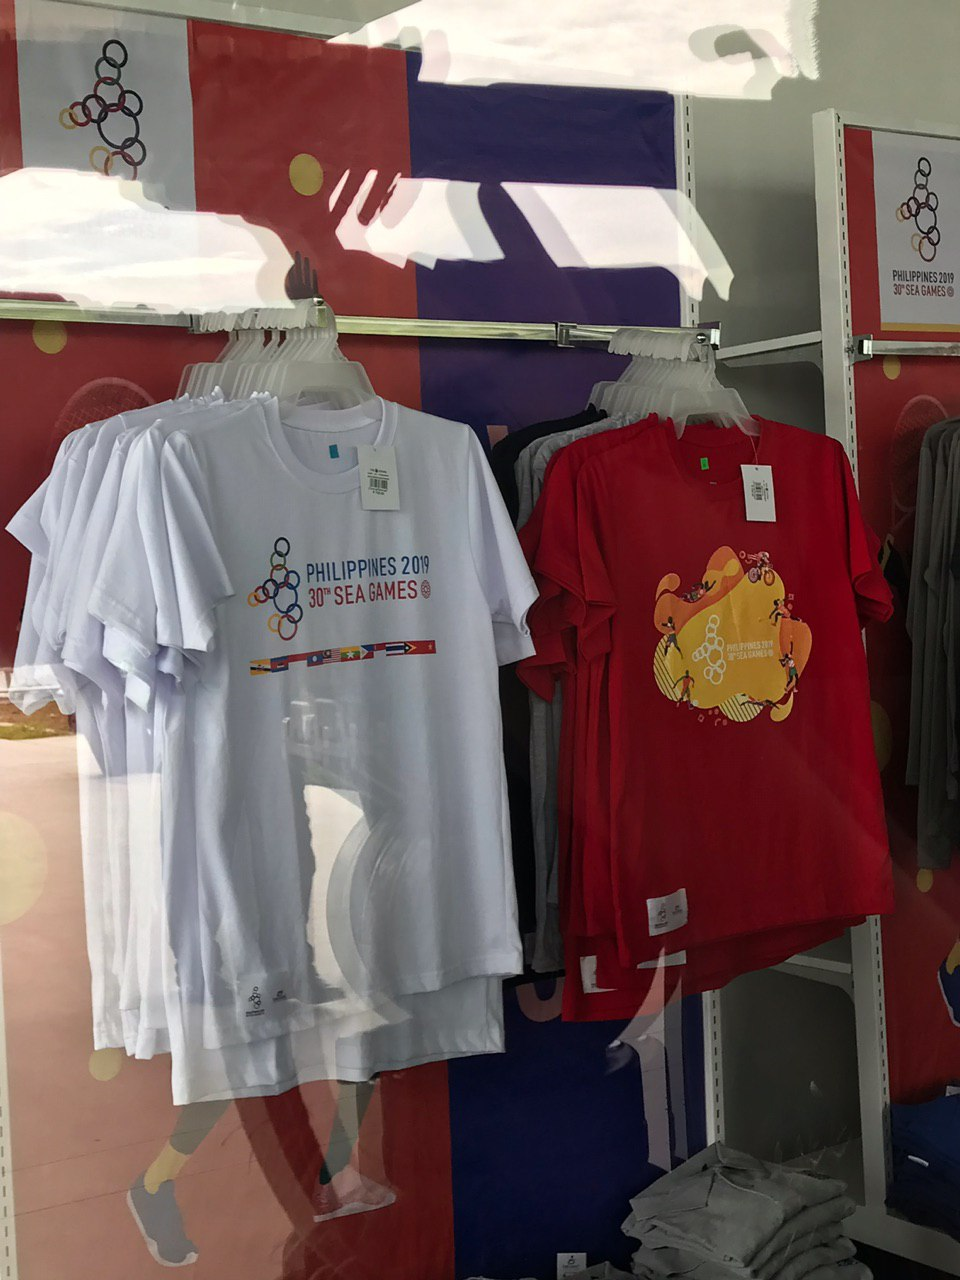 UP CLOSE. These are the white and red designs of the cotton shirts. Photo by Beatrice Go/Rappler